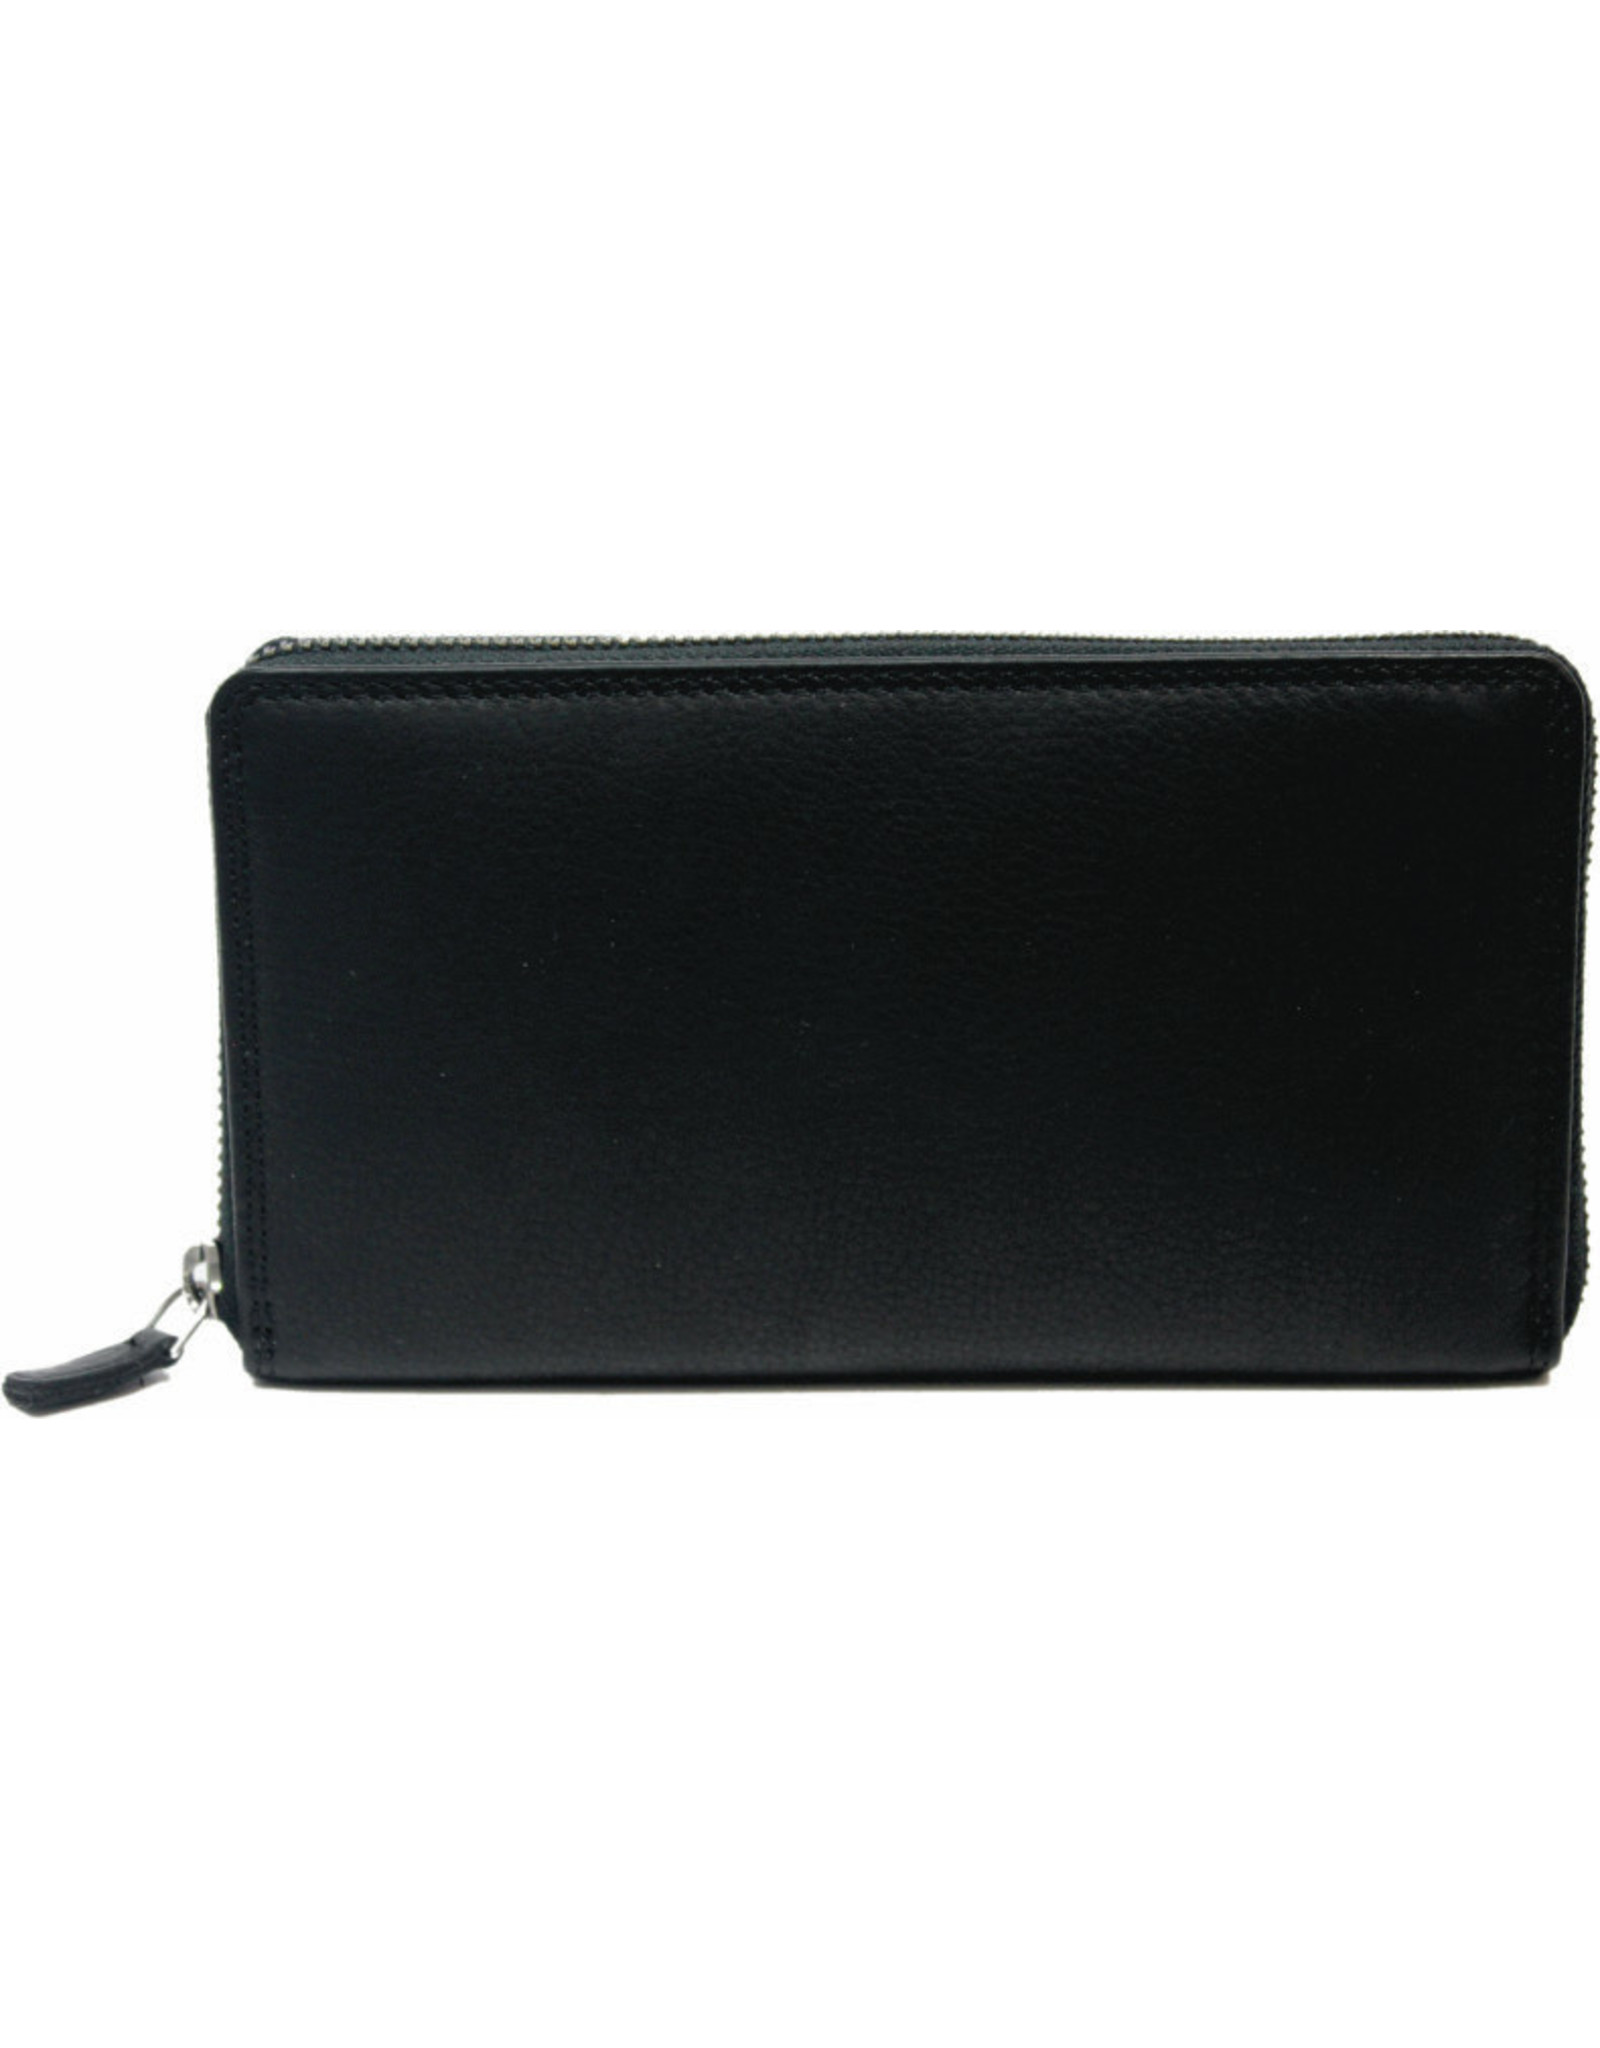 "Rugged Earth Rugged Earth Wallet 880020 Black W 4""*H 3 1/4""*D 1/4"""